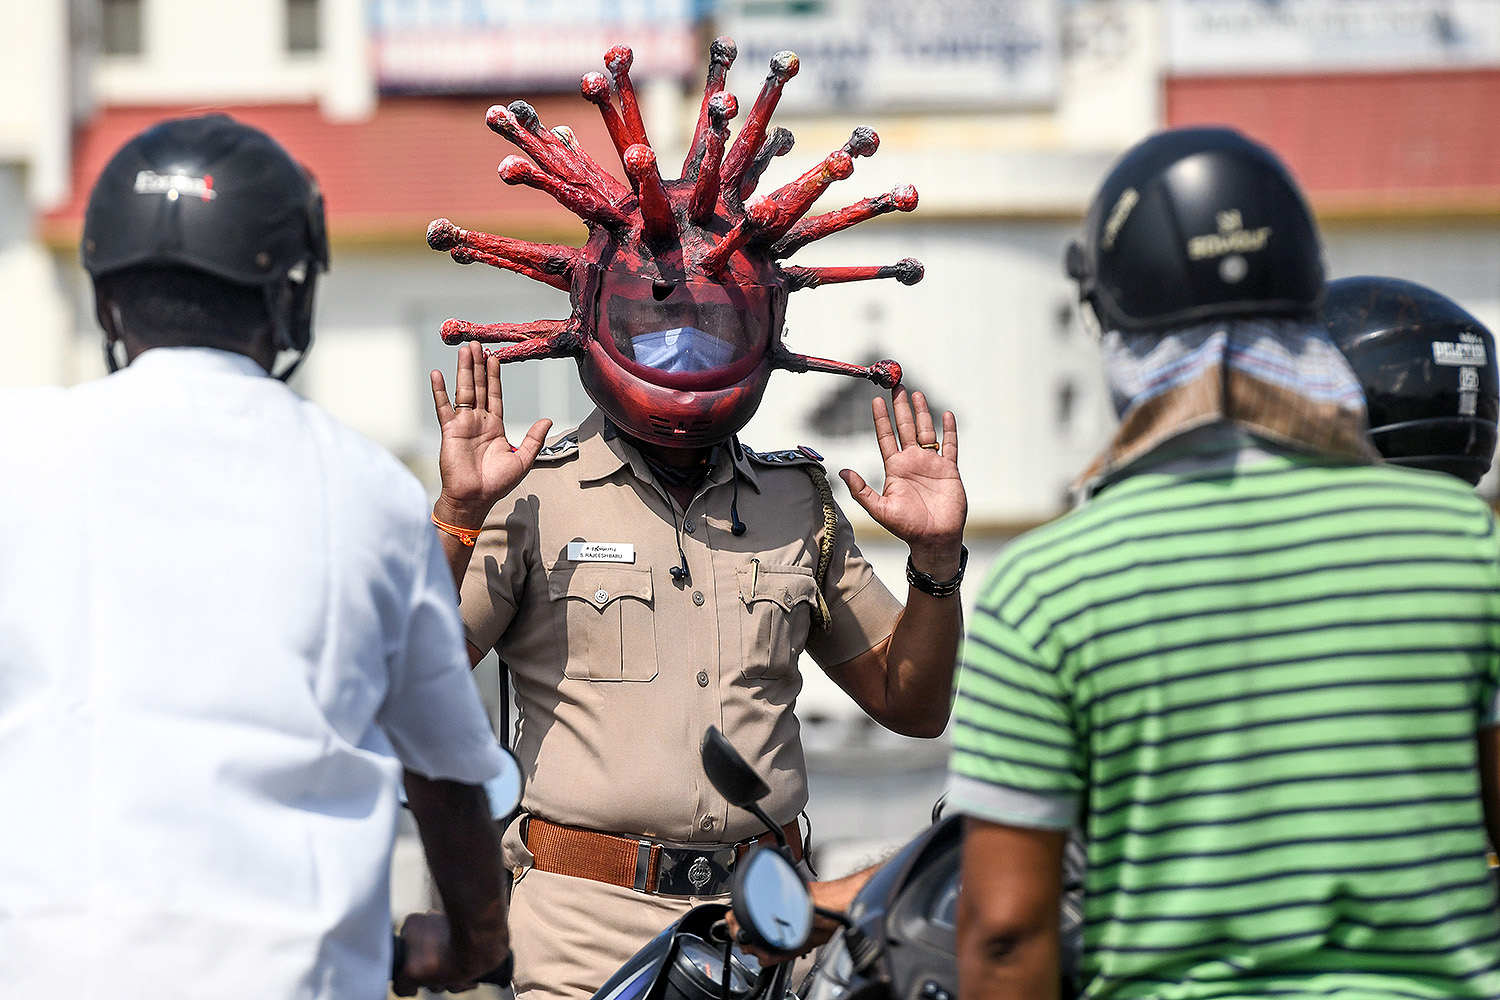 Wearing a coronavirus-themed helmet, police inspector Rajesh Babu speaks to motorists at a checkpoint during a government-imposed lockdown in Chennai, India, on March 28. ARUN SANKAR/AFP via Getty Images